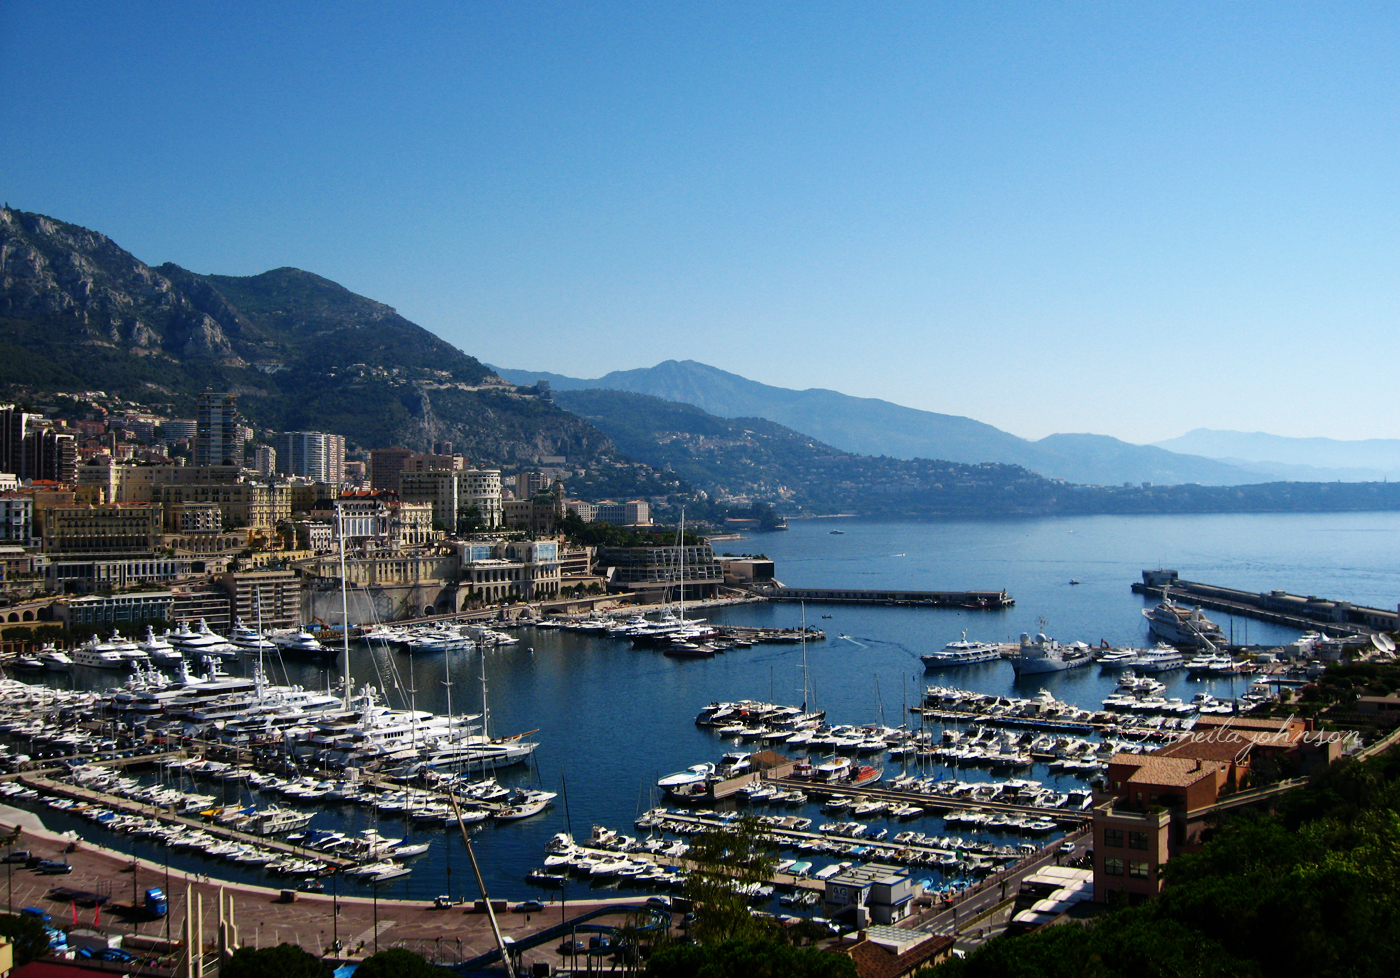 A View Of La Condamine, Monaco In The French Riviera Circa 2007, But A Quick Internet Search Tells Me It Looks Much The Same Today.